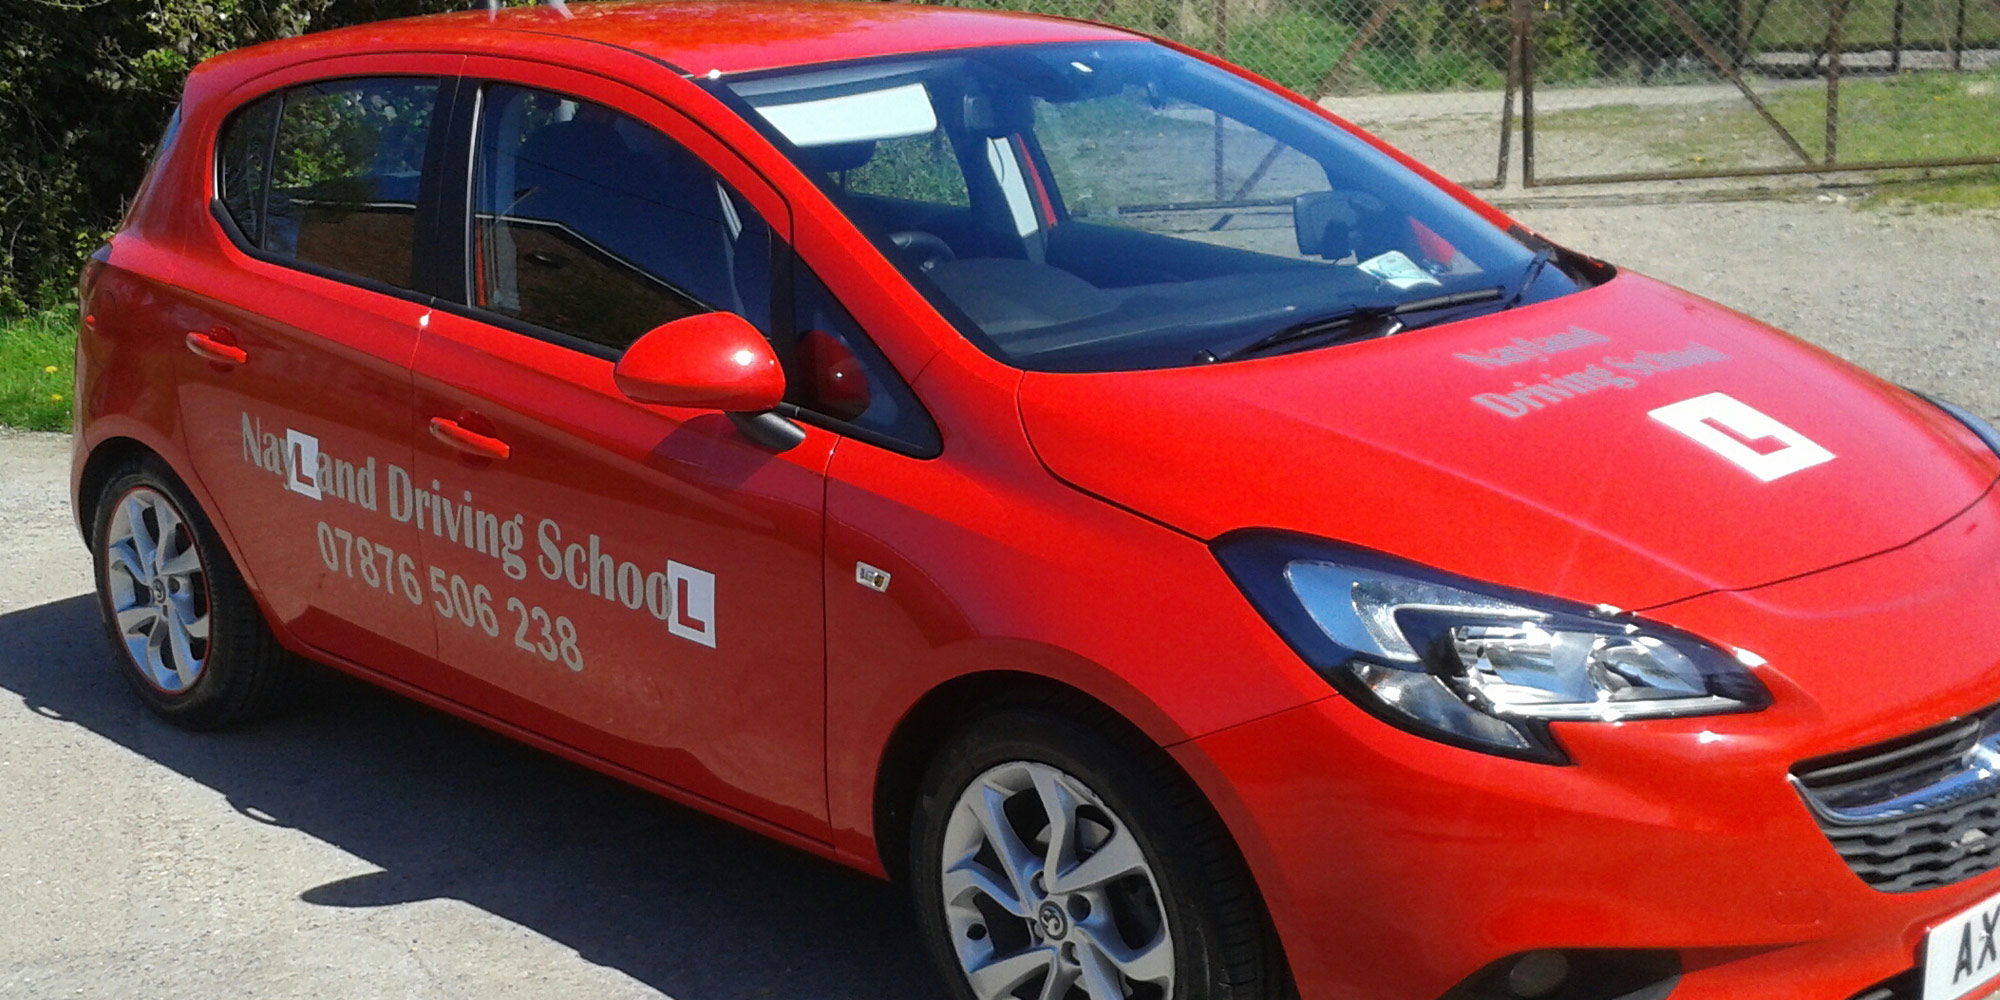 Nayland Driving School car used for driving lessons and driving instructor training